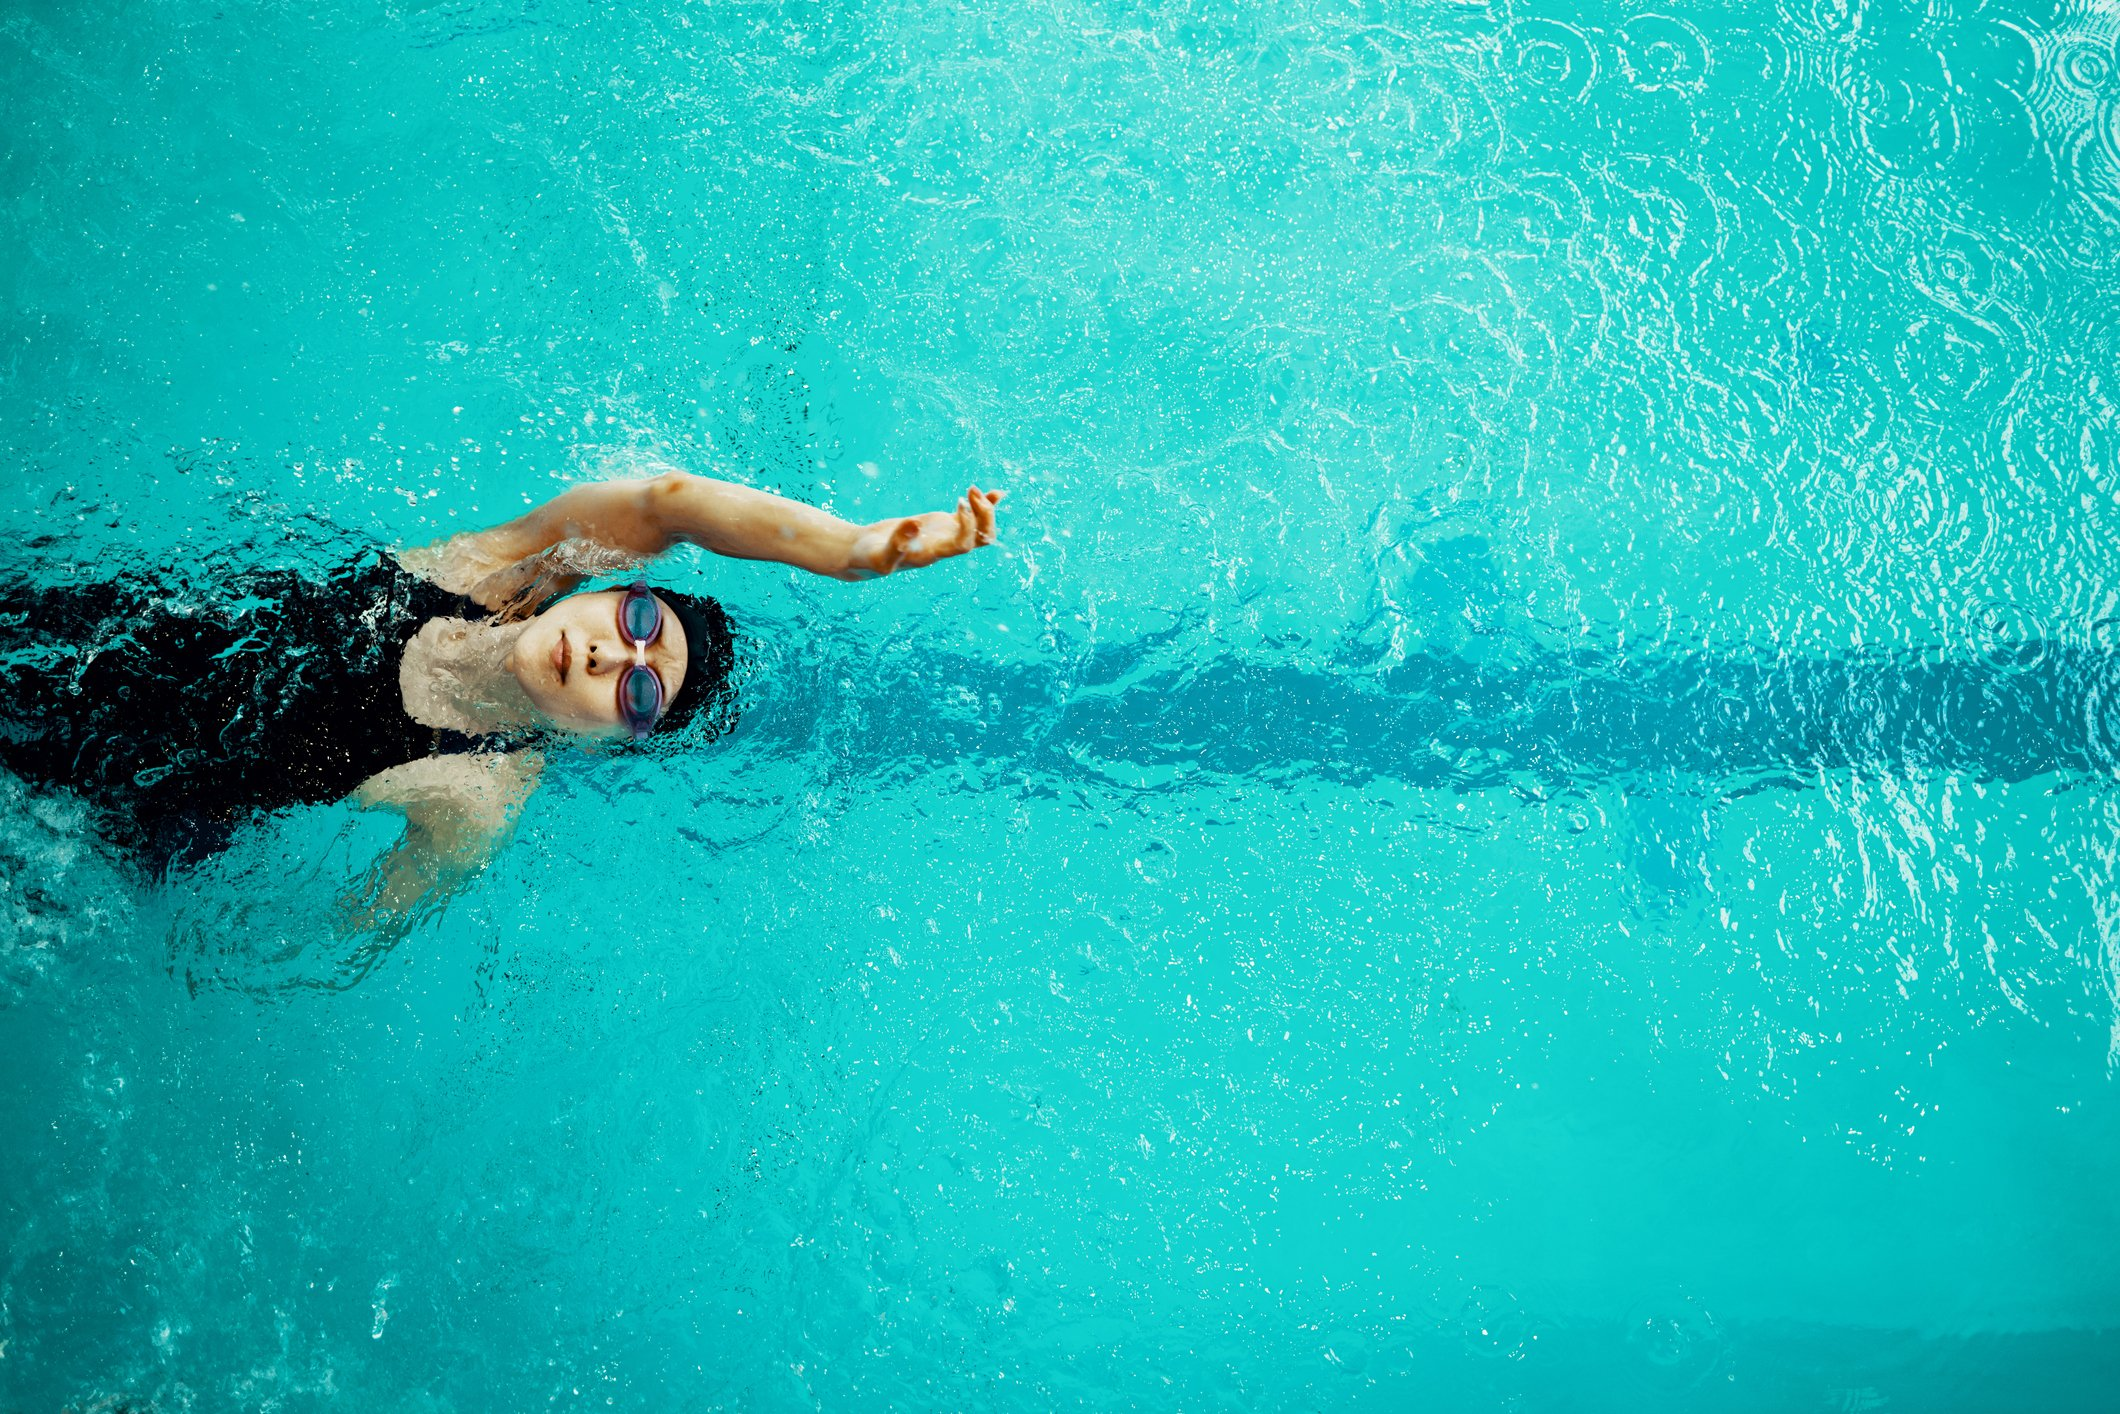 View from directly above a paraplegic woman training in a pool for competitive swimming. | Photo: Getty Images